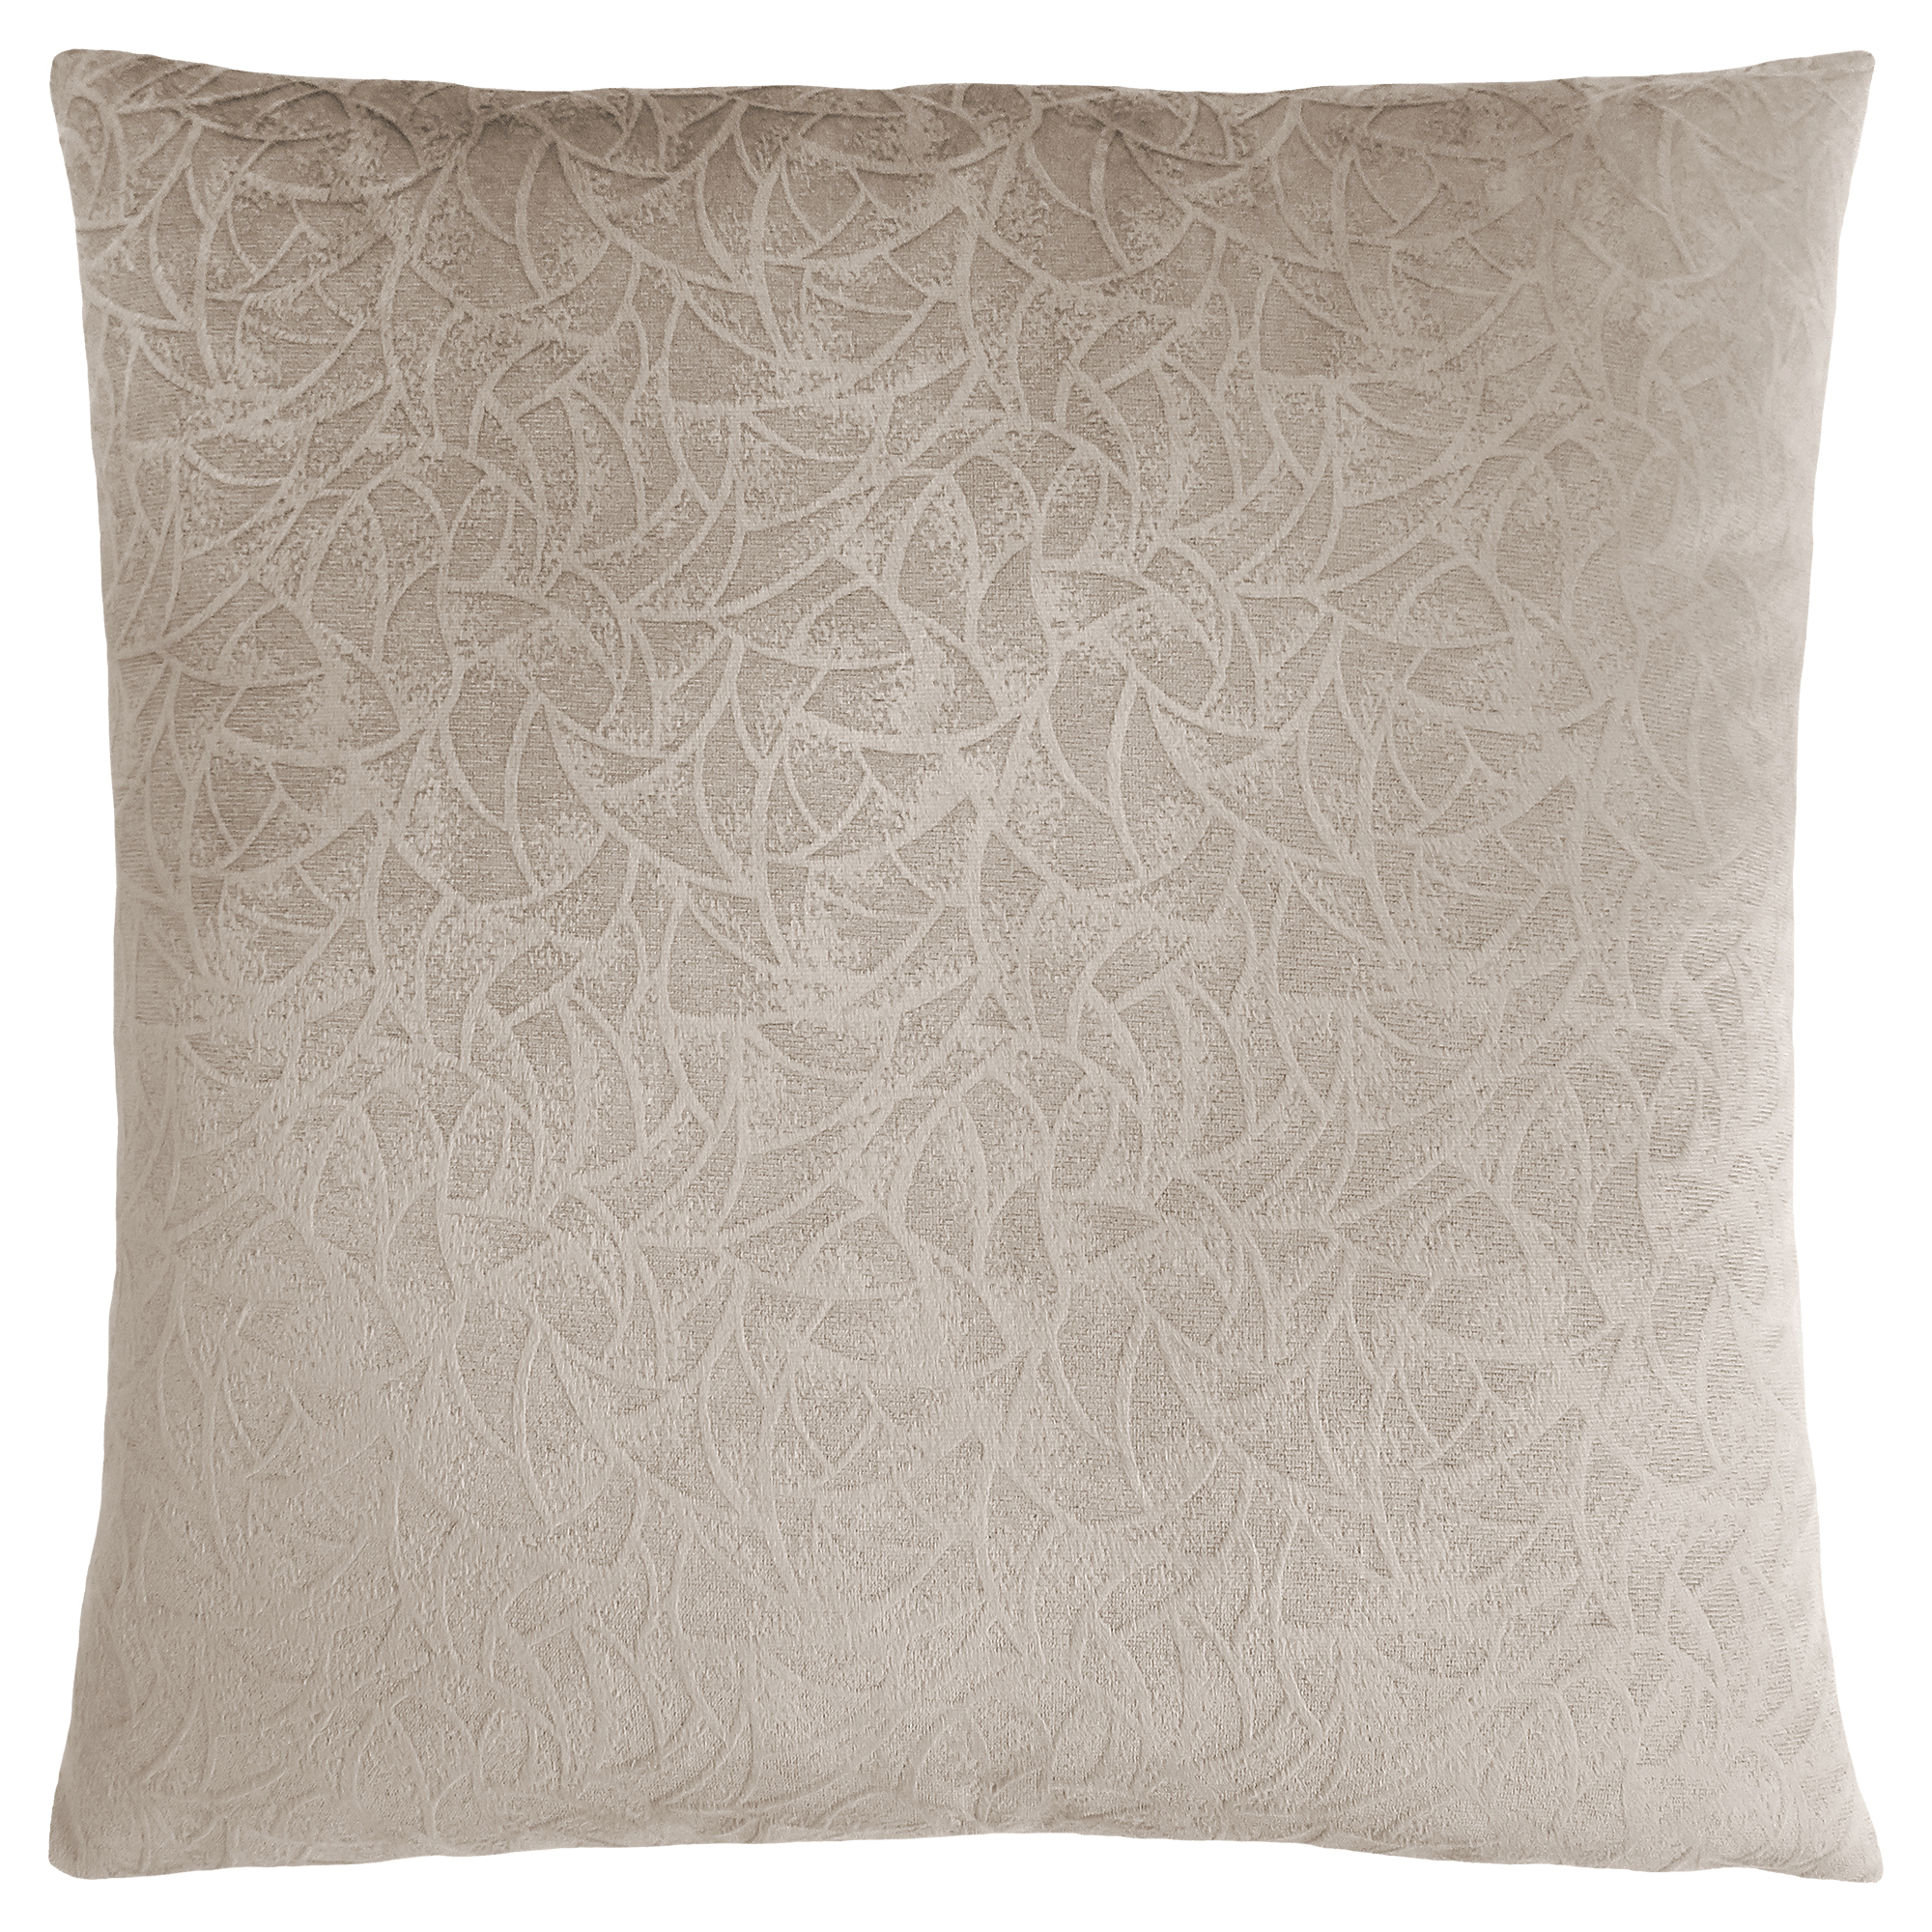 "PILLOW - 18""X 18"" / TAUPE FLORAL VELVET / 1PC"